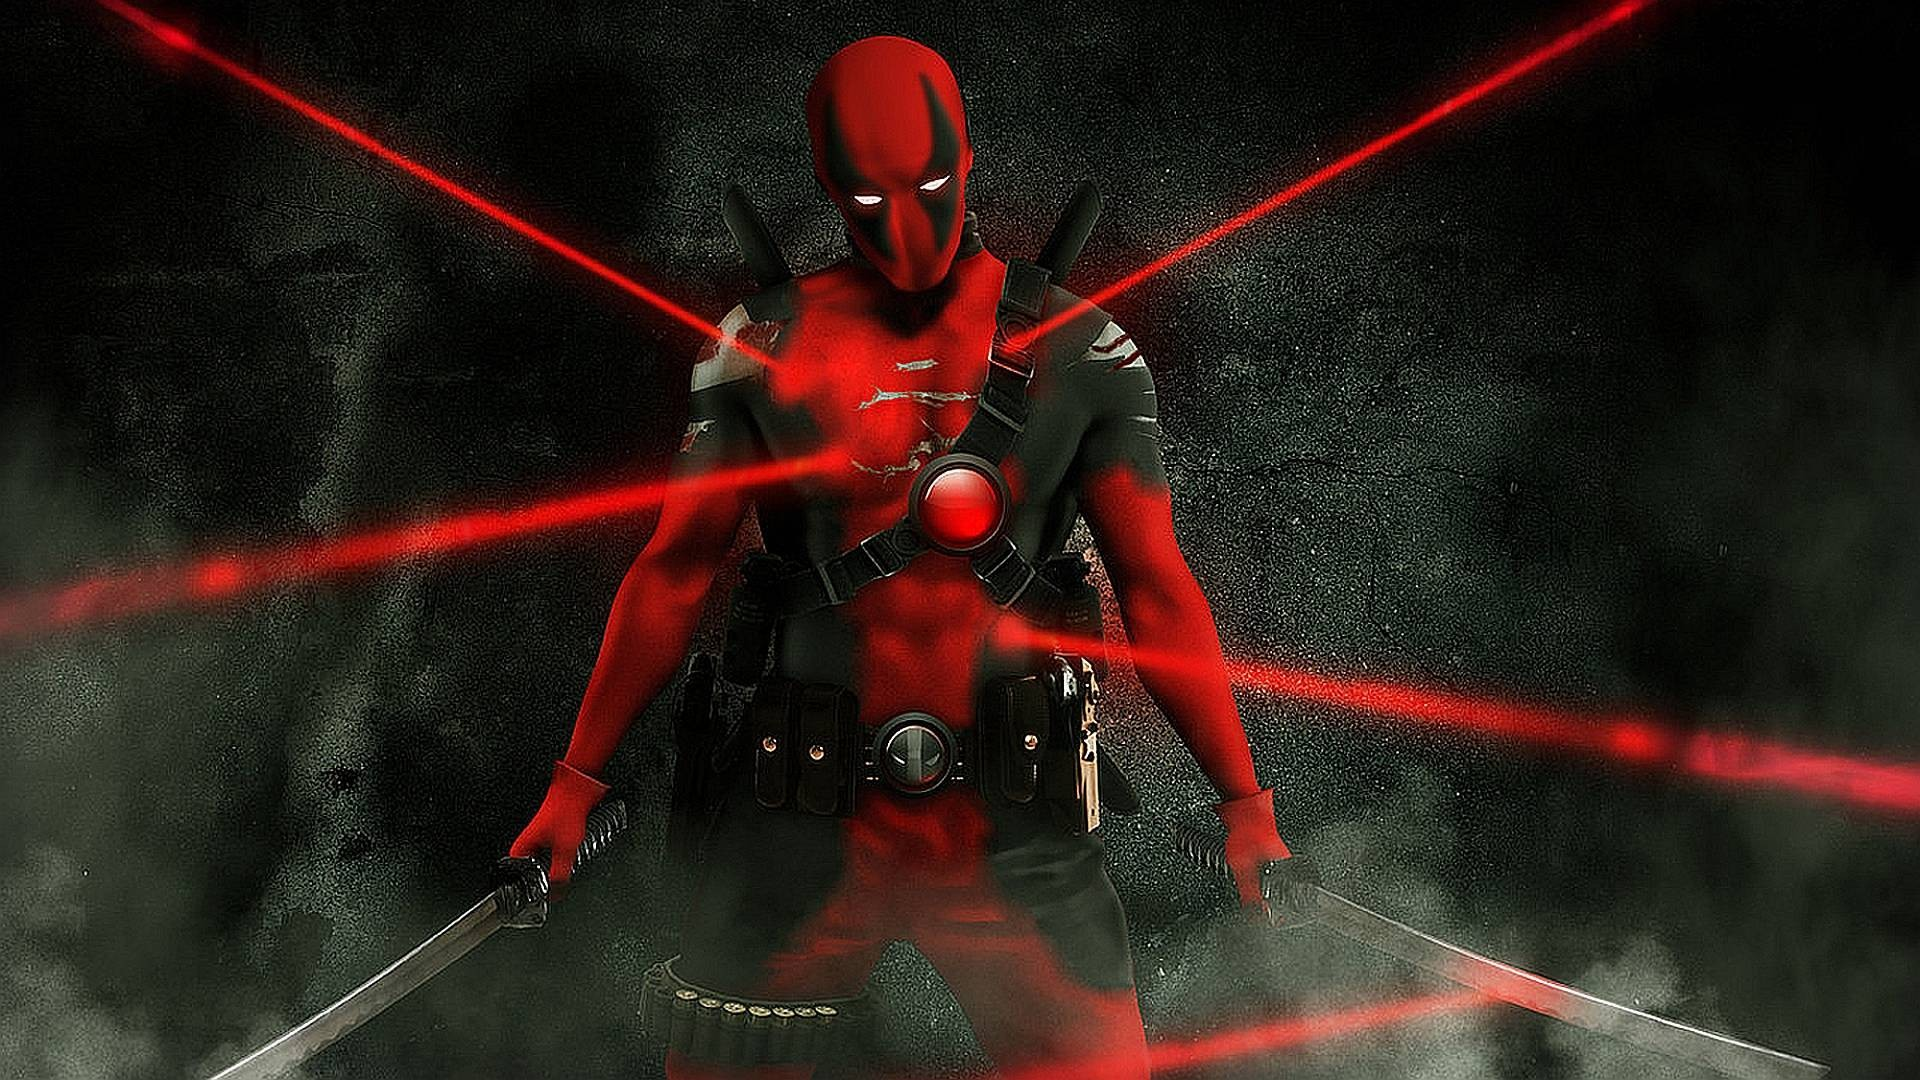 1920x1080 Movie : Wallpapers For Deadpool Movie Wallpaper 1080x1920px .